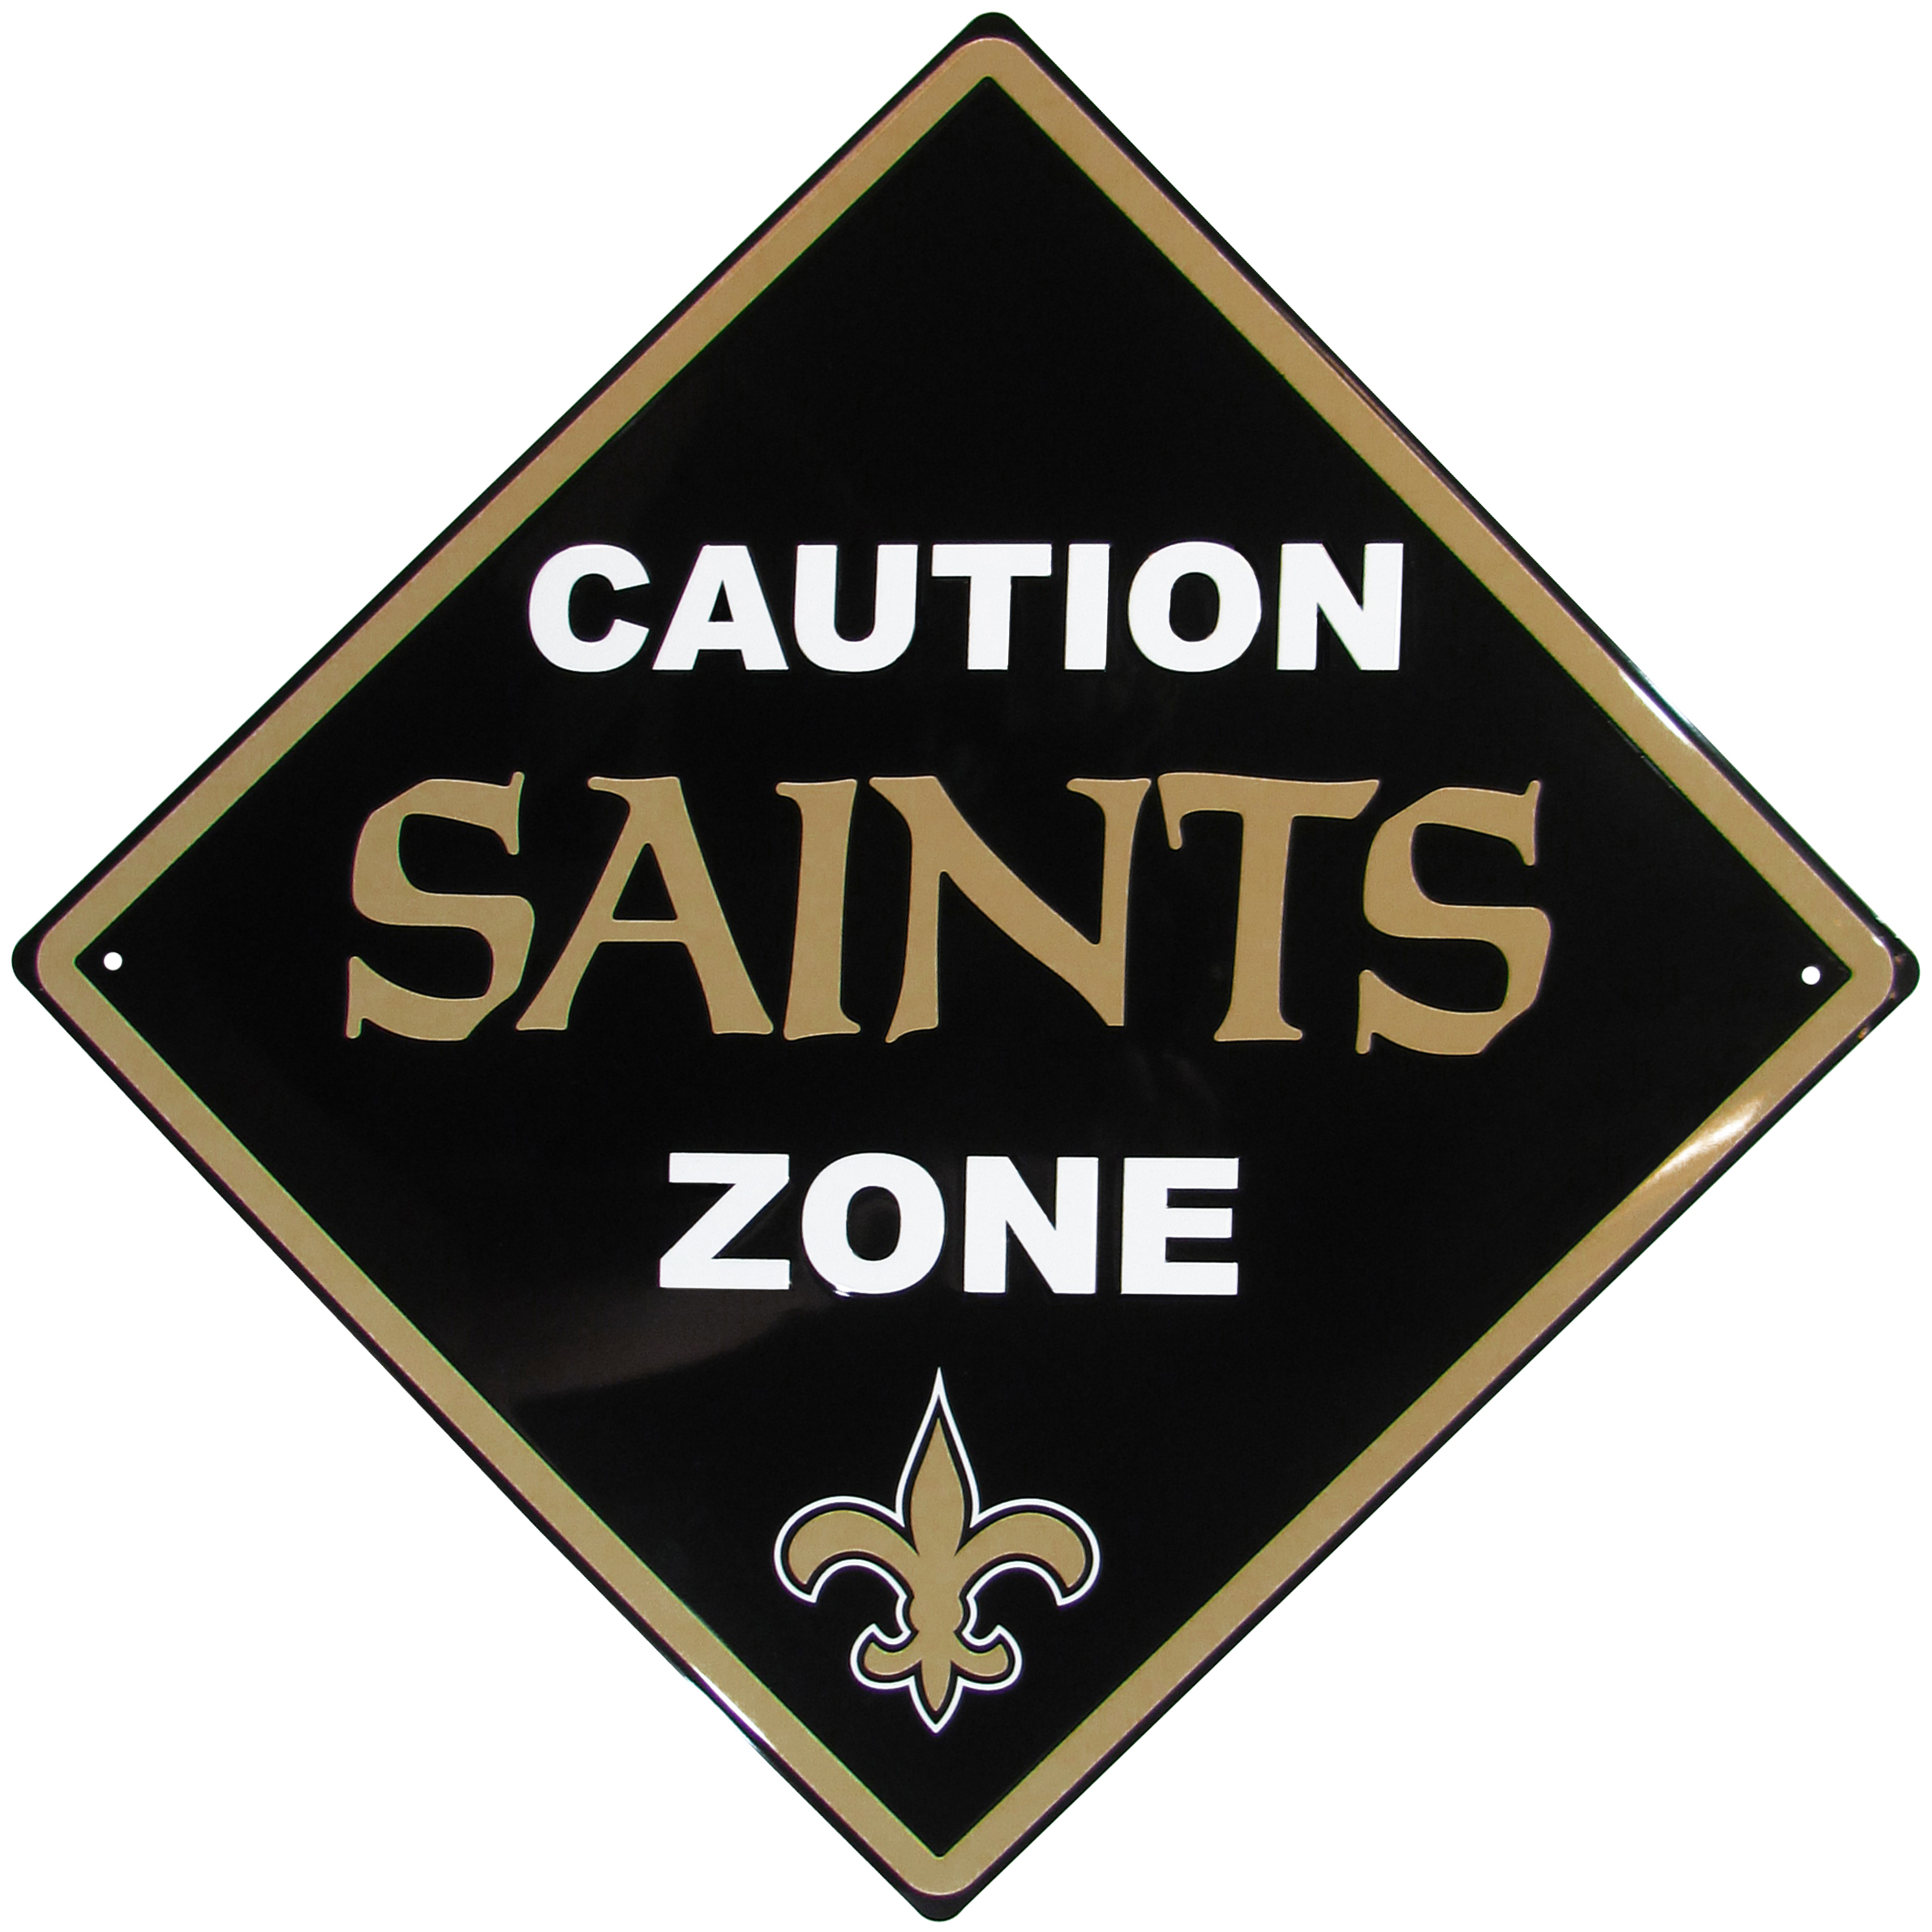 New Orleans Saints Caution Wall Sign Plaque - Let everyone know that they are entering New Orleans Saints territory! Our 14 inch caution wall plaques are a the perfect way to convert any room into a fan cave! The light-weight aluminum signs mount easily to any wall and are perfect for the home or office.